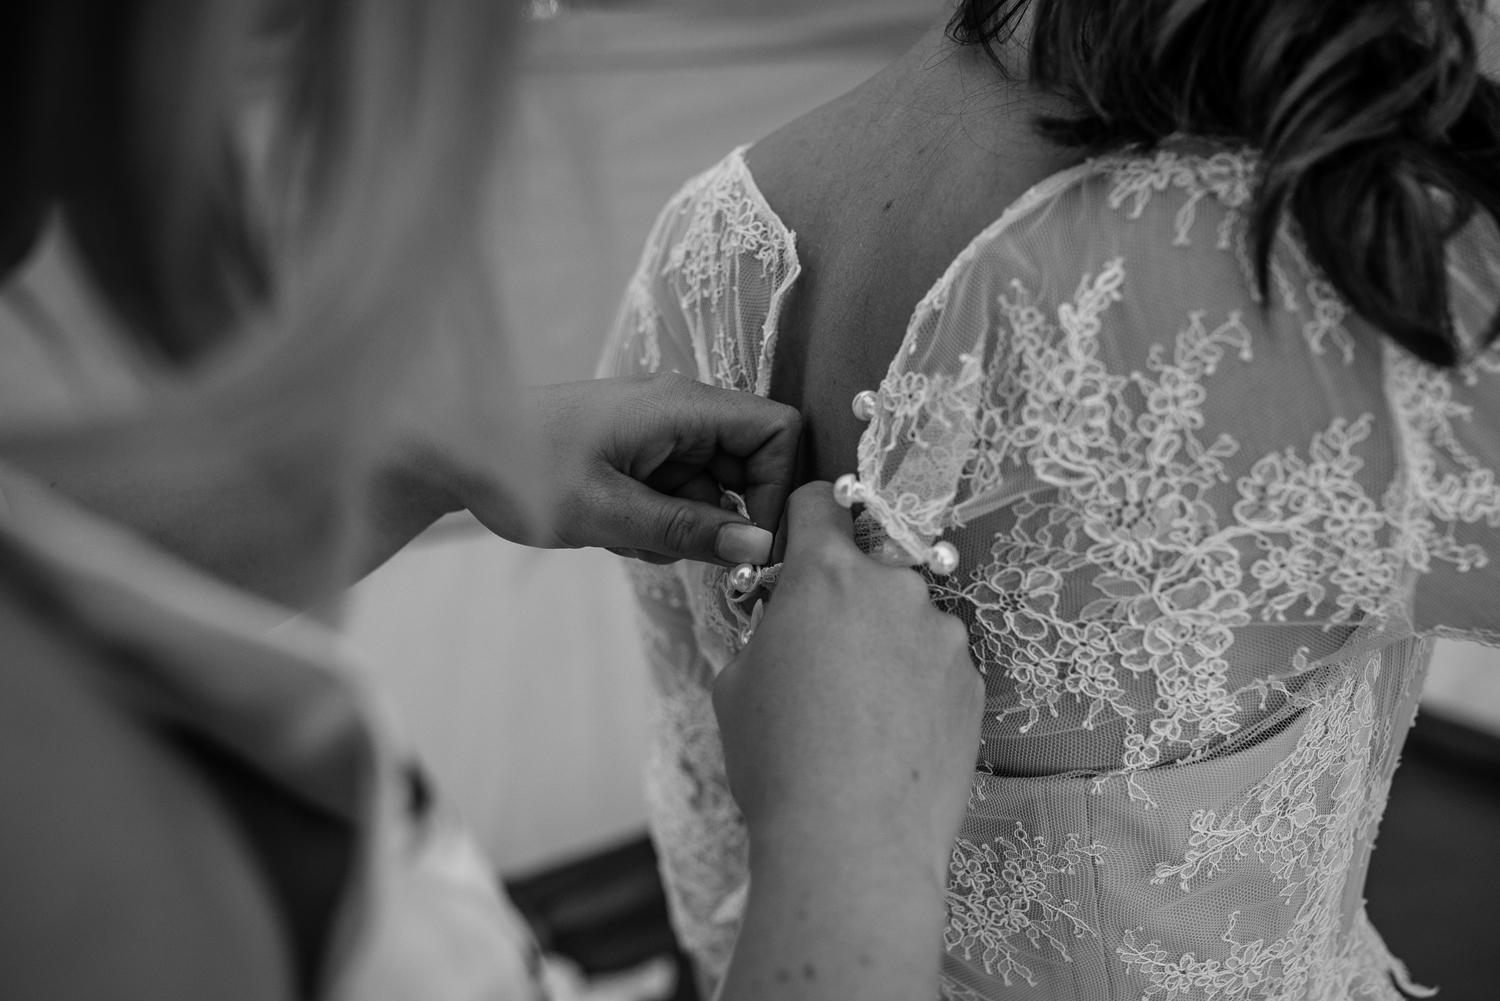 Bride getting into her wedding dress while bridesmaid helps fasten her back buttons